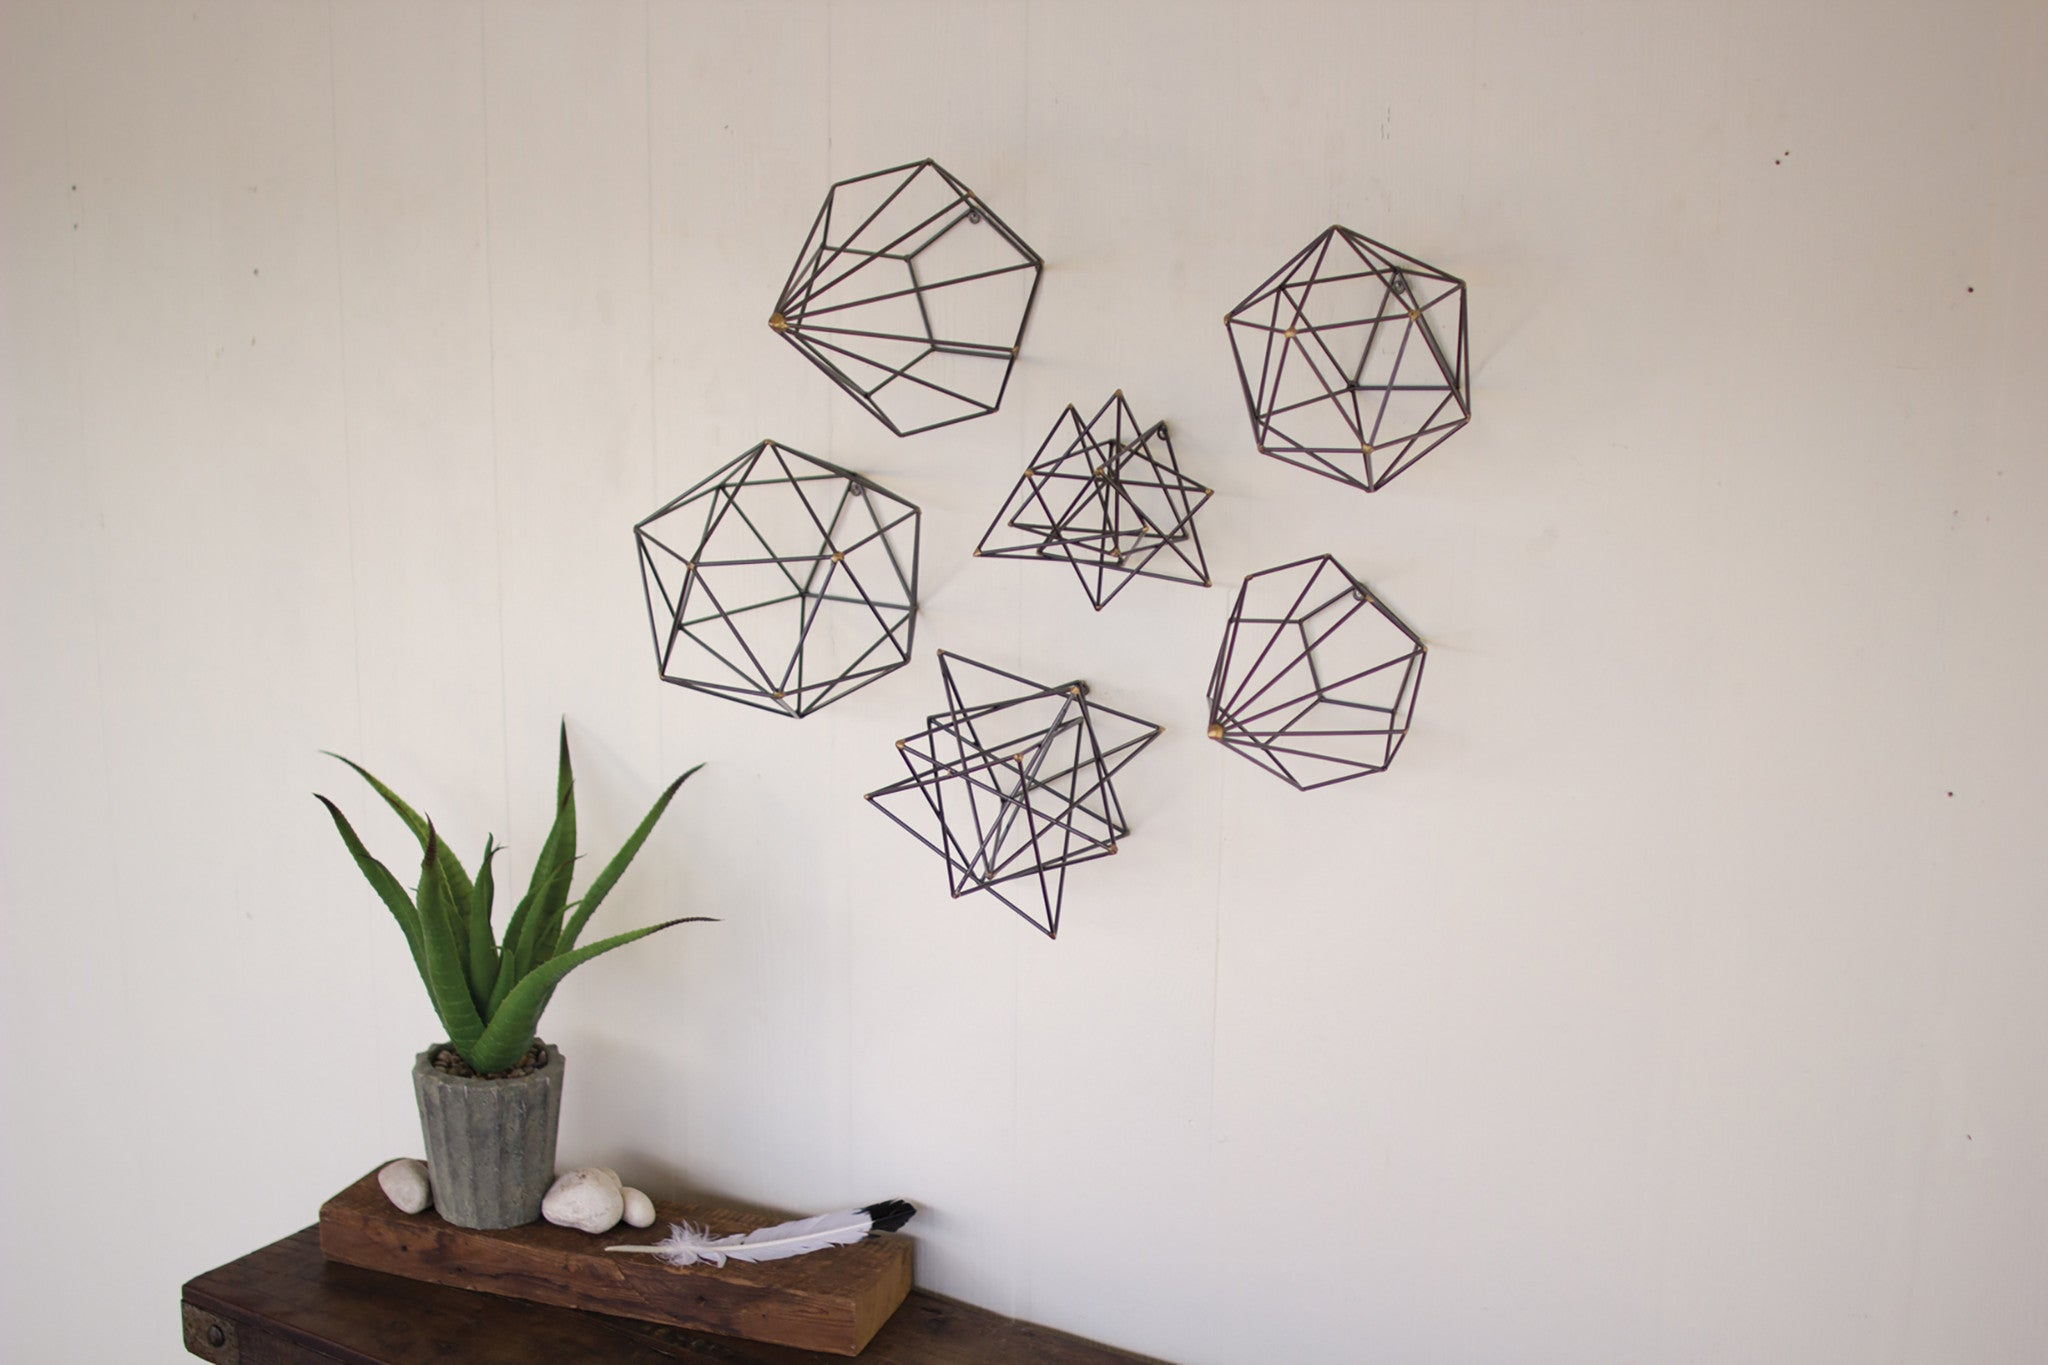 Geometric Metal Wire Wall Art - Set of 6 & Geometric Metal Wire Wall Art - Set of 6 - Woodwaves